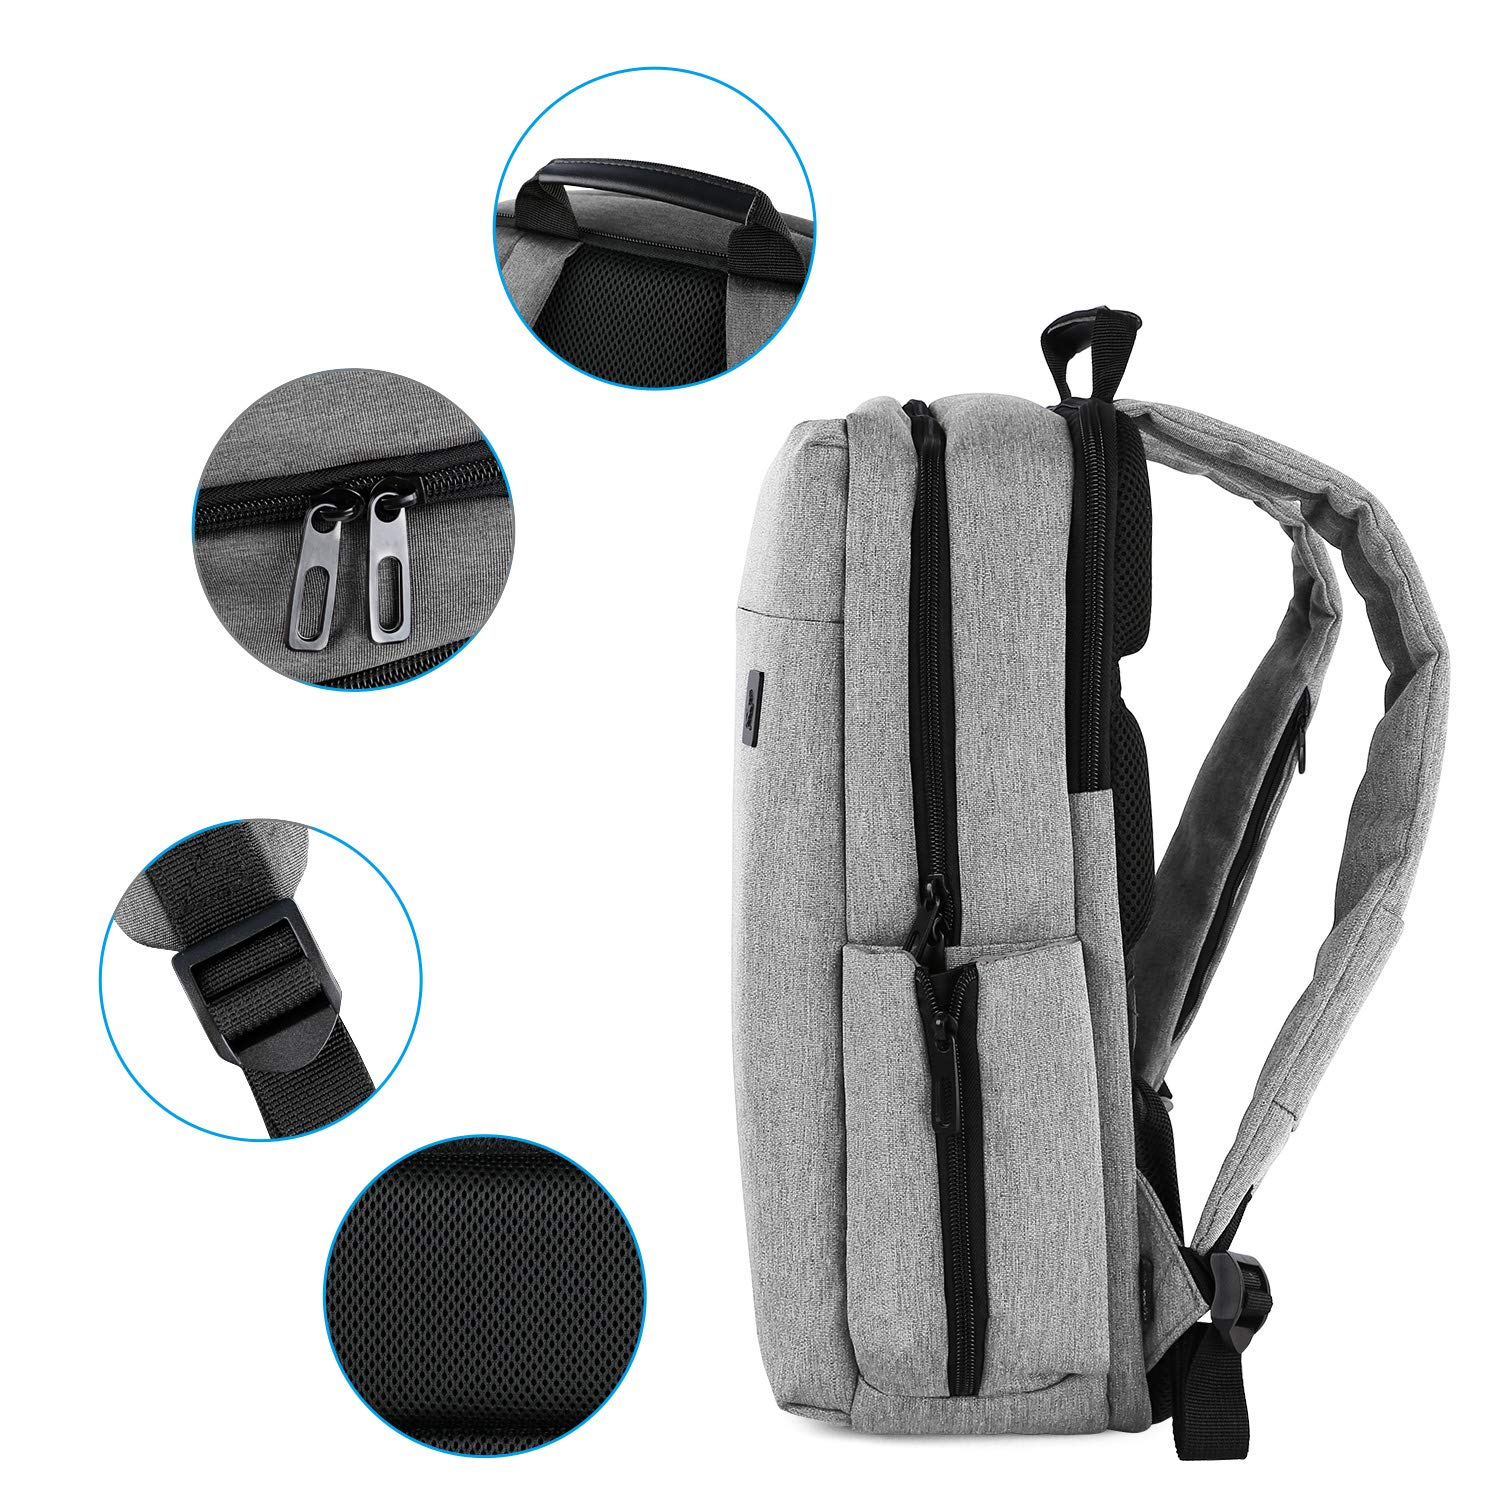 Cai 7331 Large Business Travel Backpack, Durable Multi-Functional Water Resistant, School College Commuting Bag with Headphones Port and luggage strap 15.6 \